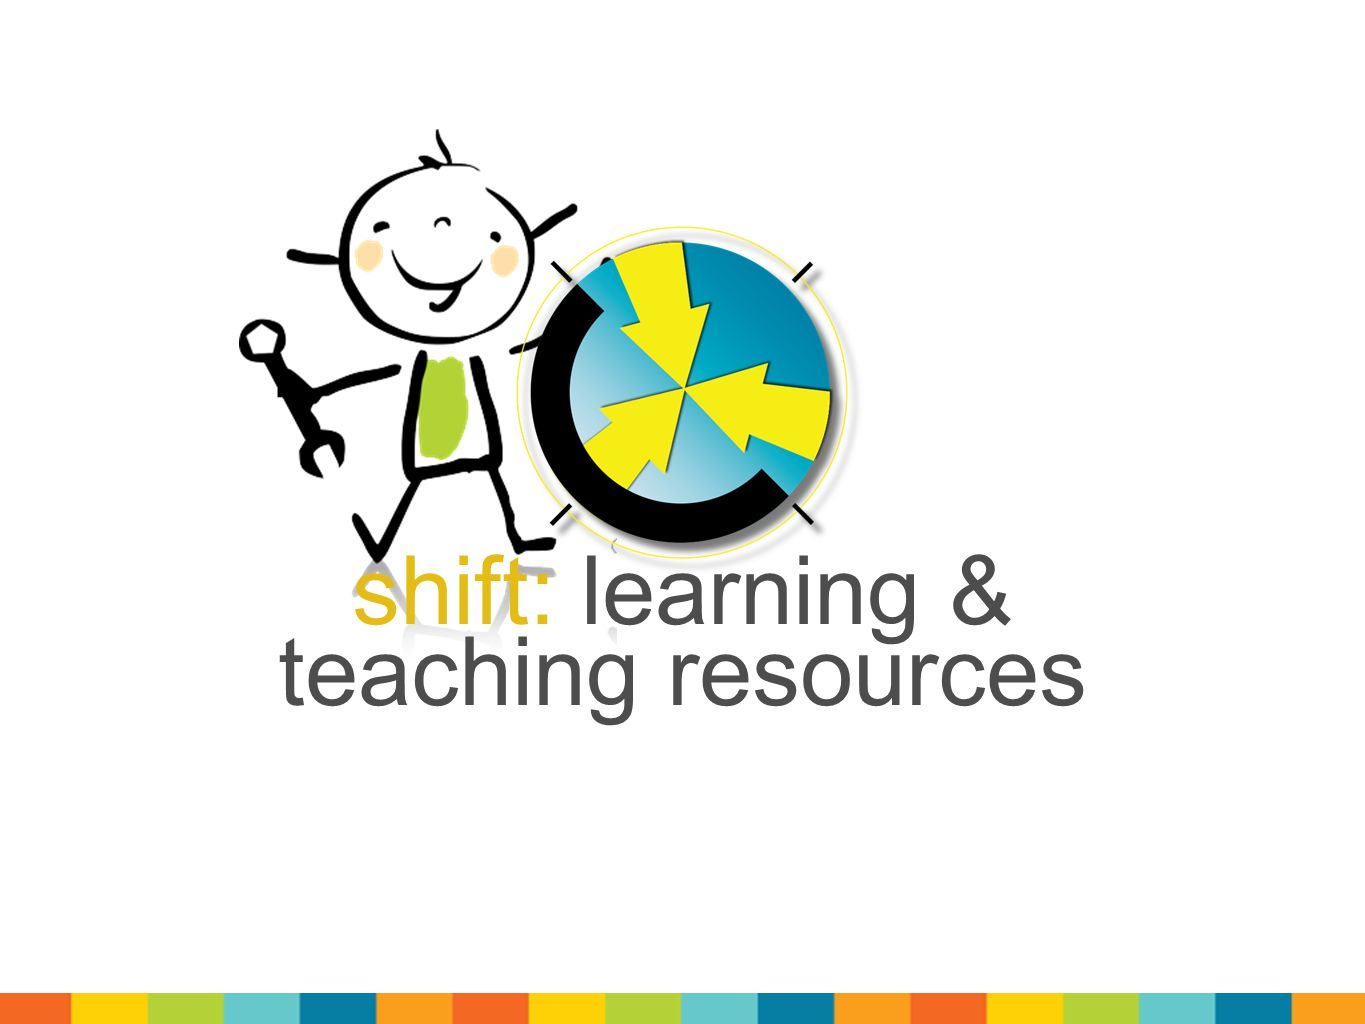 shift: learning & teaching resources